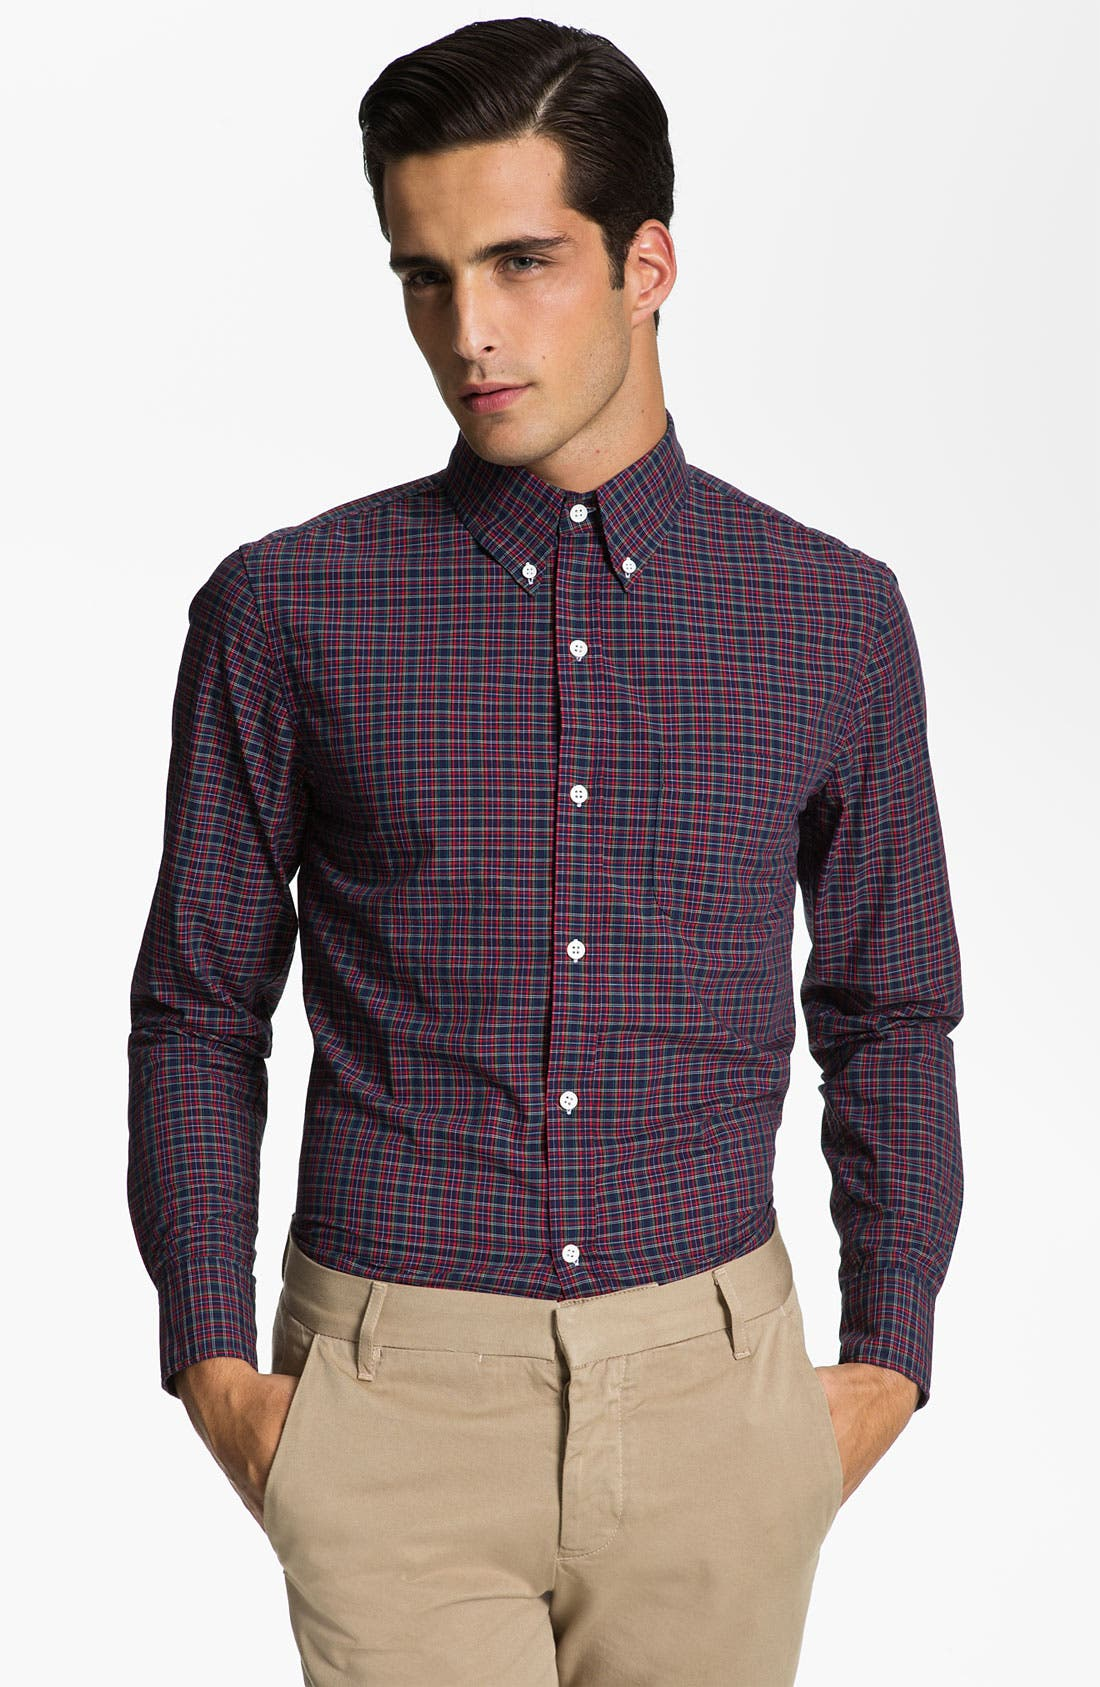 Alternate Image 1 Selected - Band of Outsiders Plaid Sport Shirt